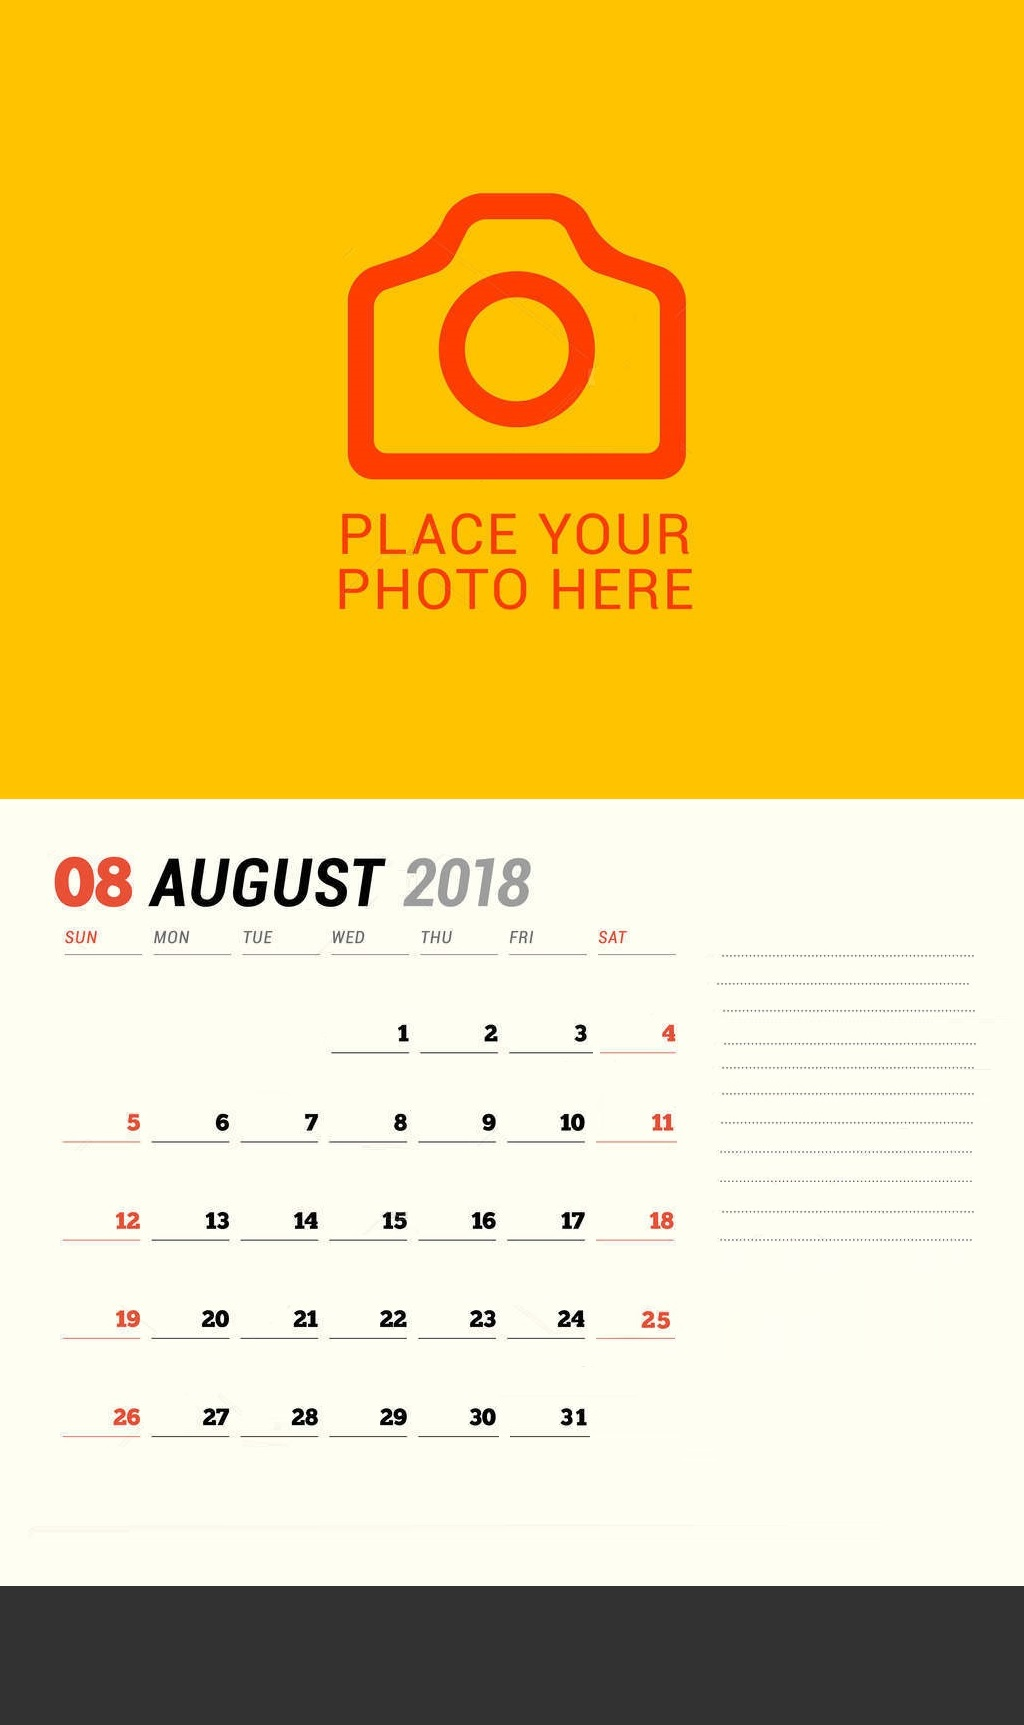 Free August 2018 Personalized Calendar